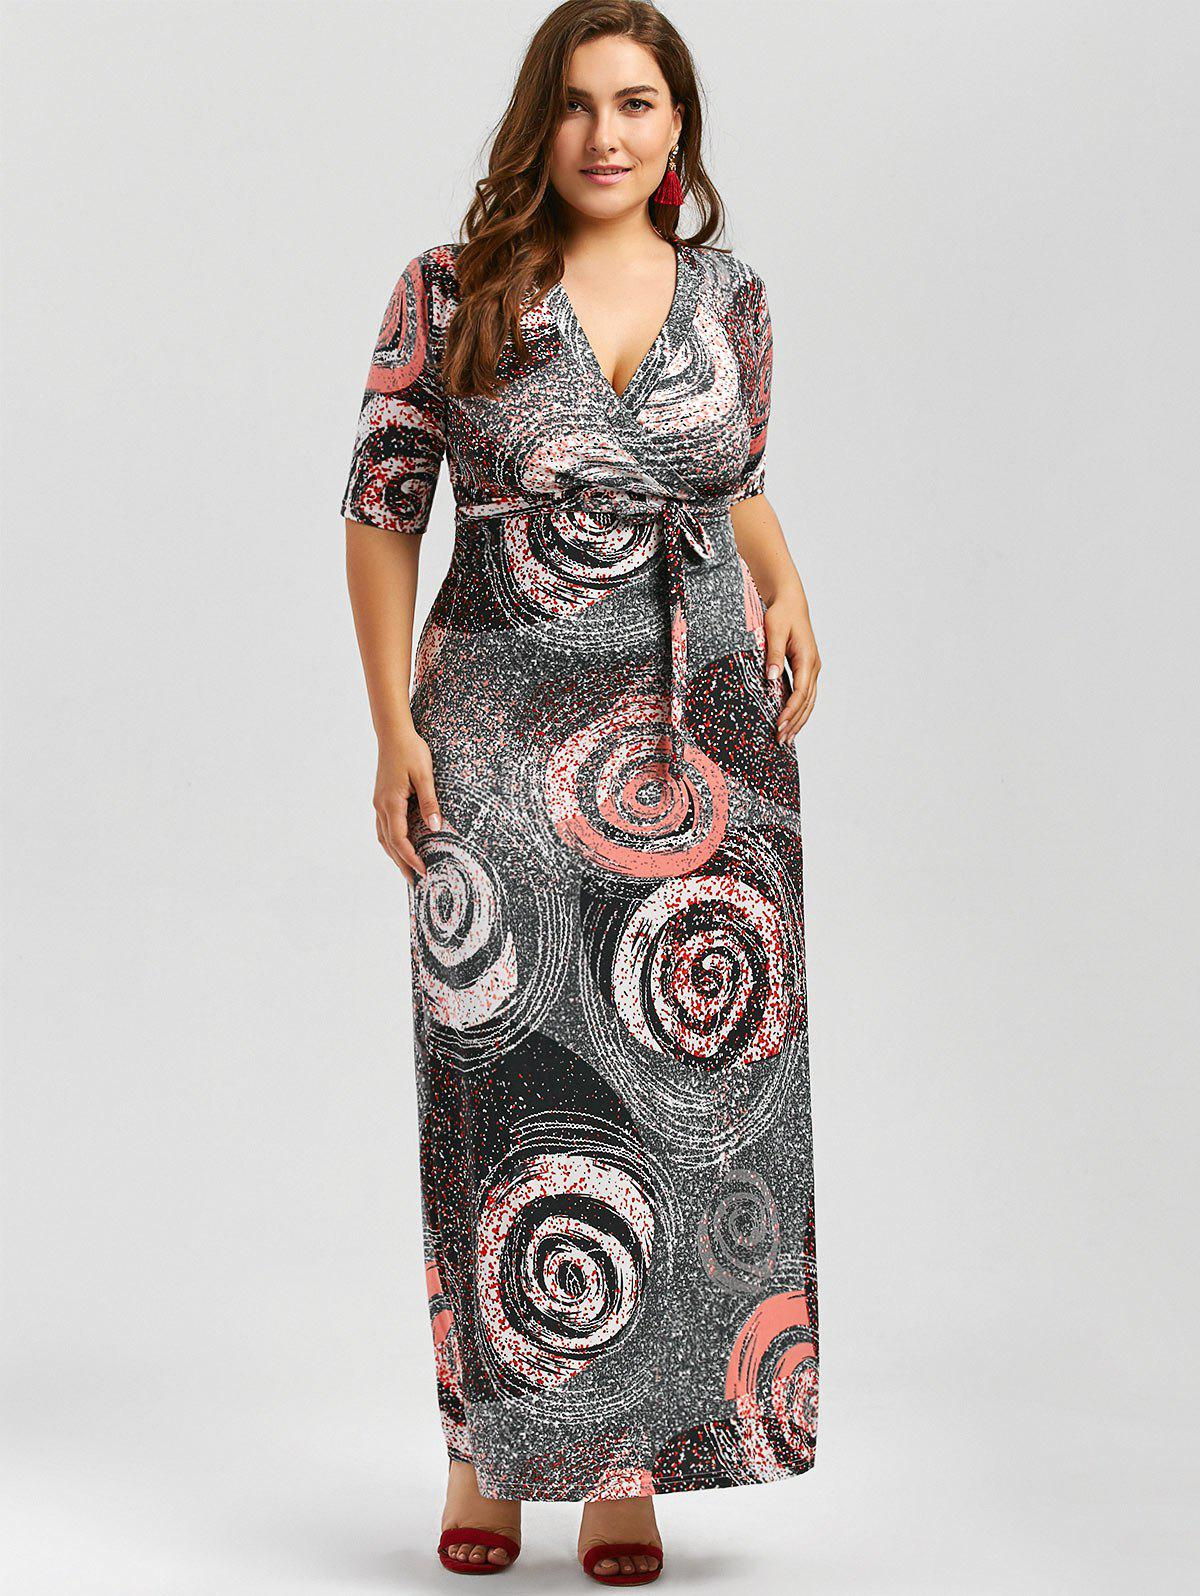 Galaxy Print Plus Size Floor Length Dress With Belt - COLORMIX 2XL